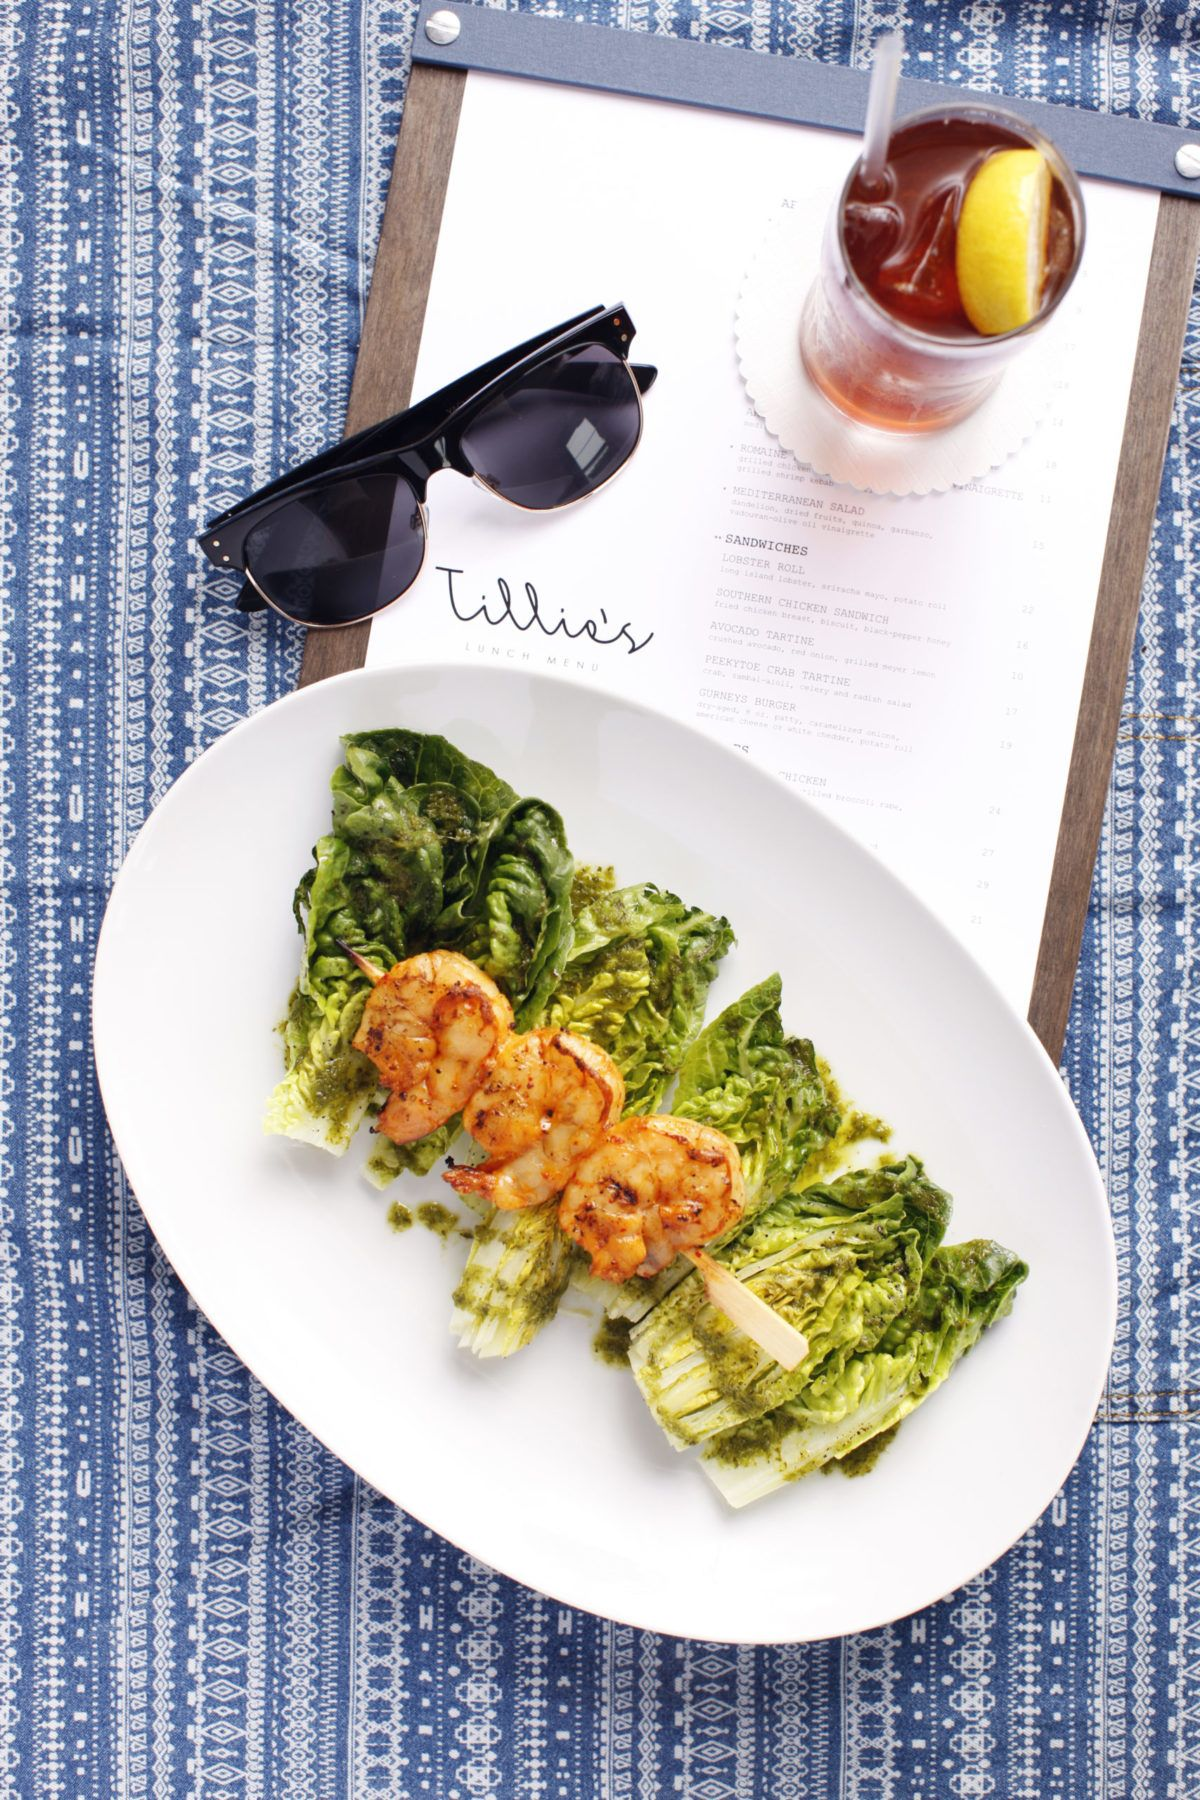 Shrimp and salad on a plate with sunglasses and a cocktail on the table